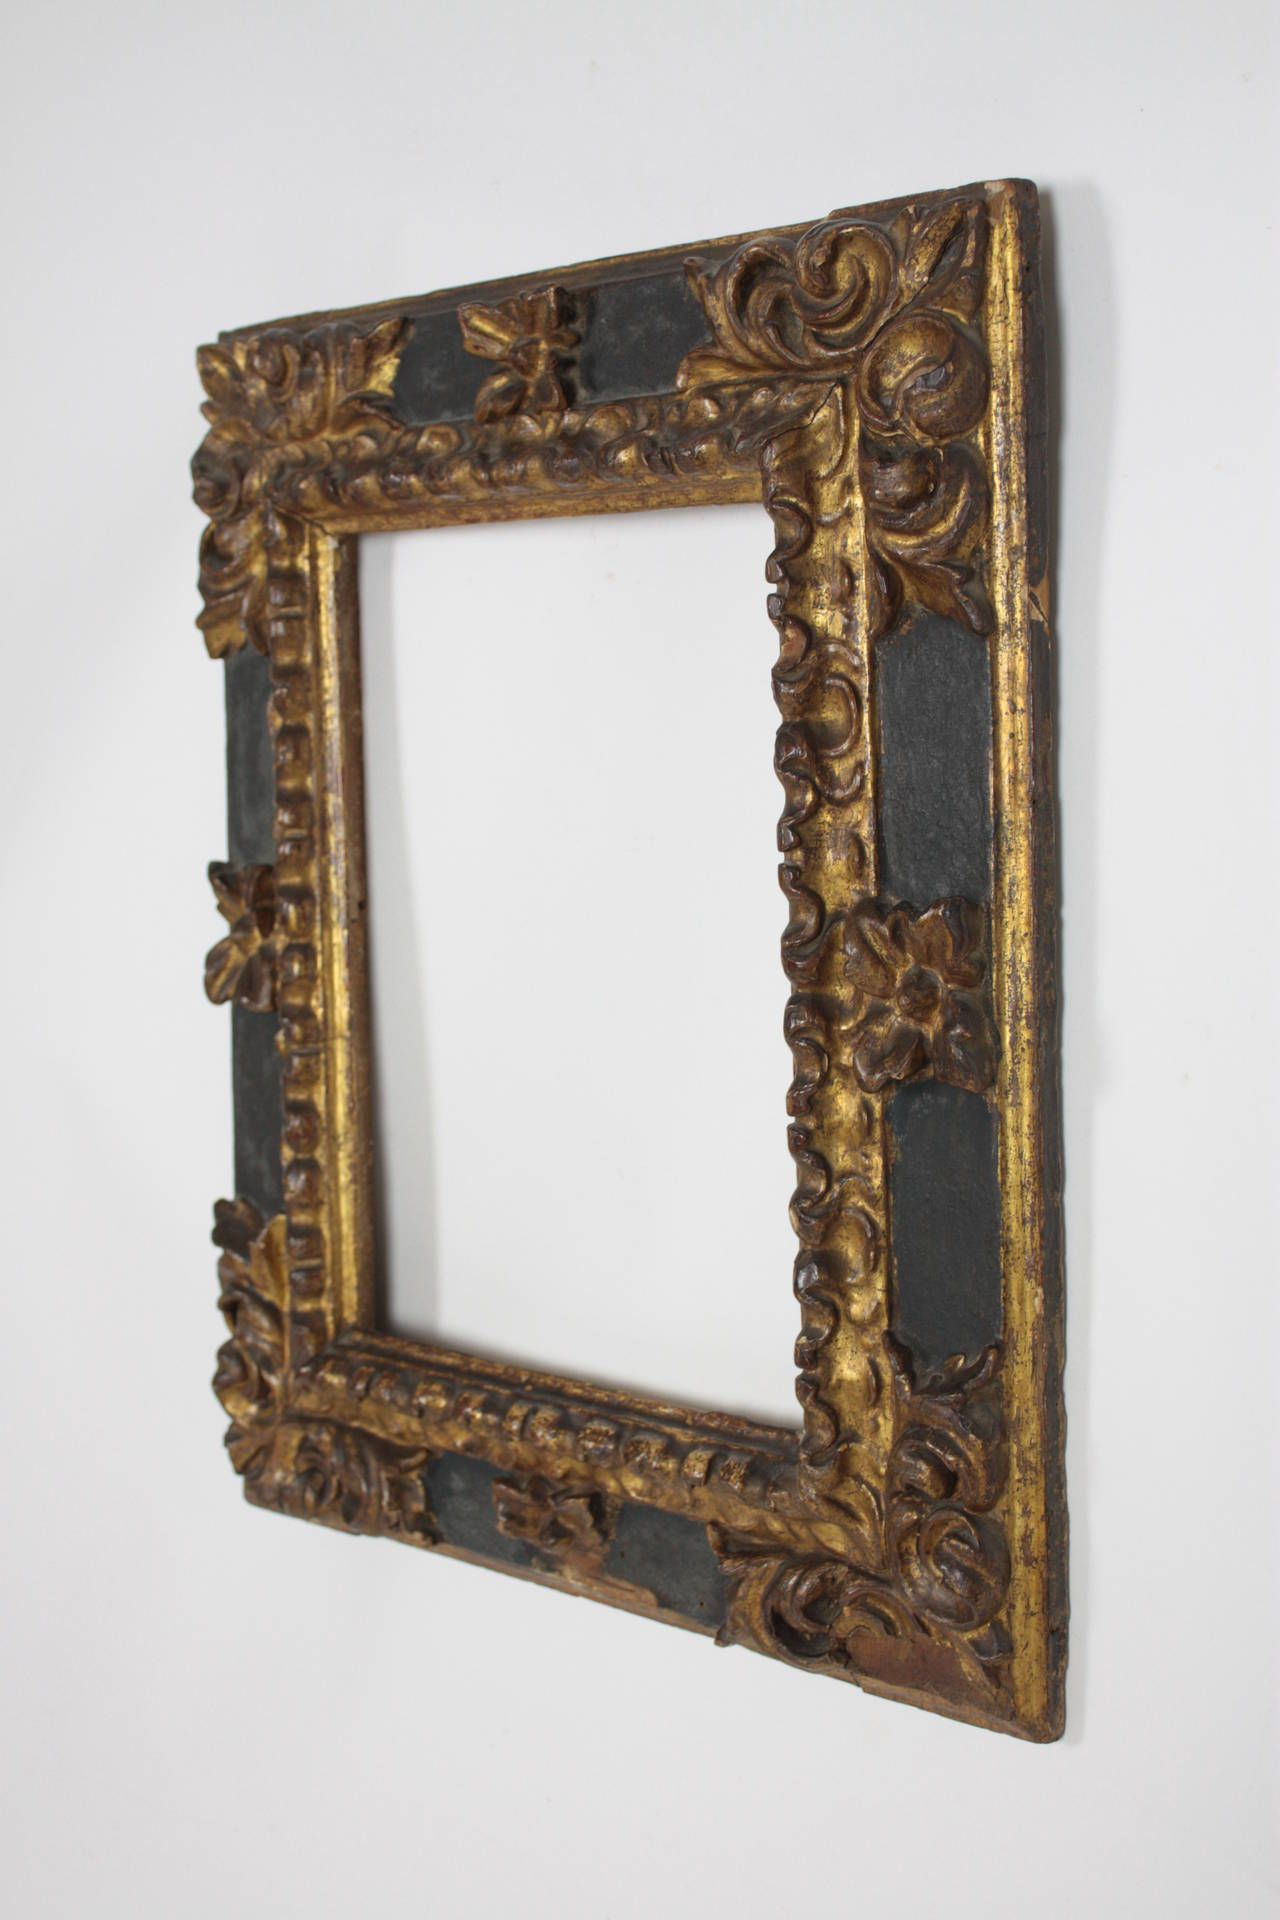 Marcos De Cuadros Antiguos 17th Century Spanish Baroque Polychromed Carved Wood Gold